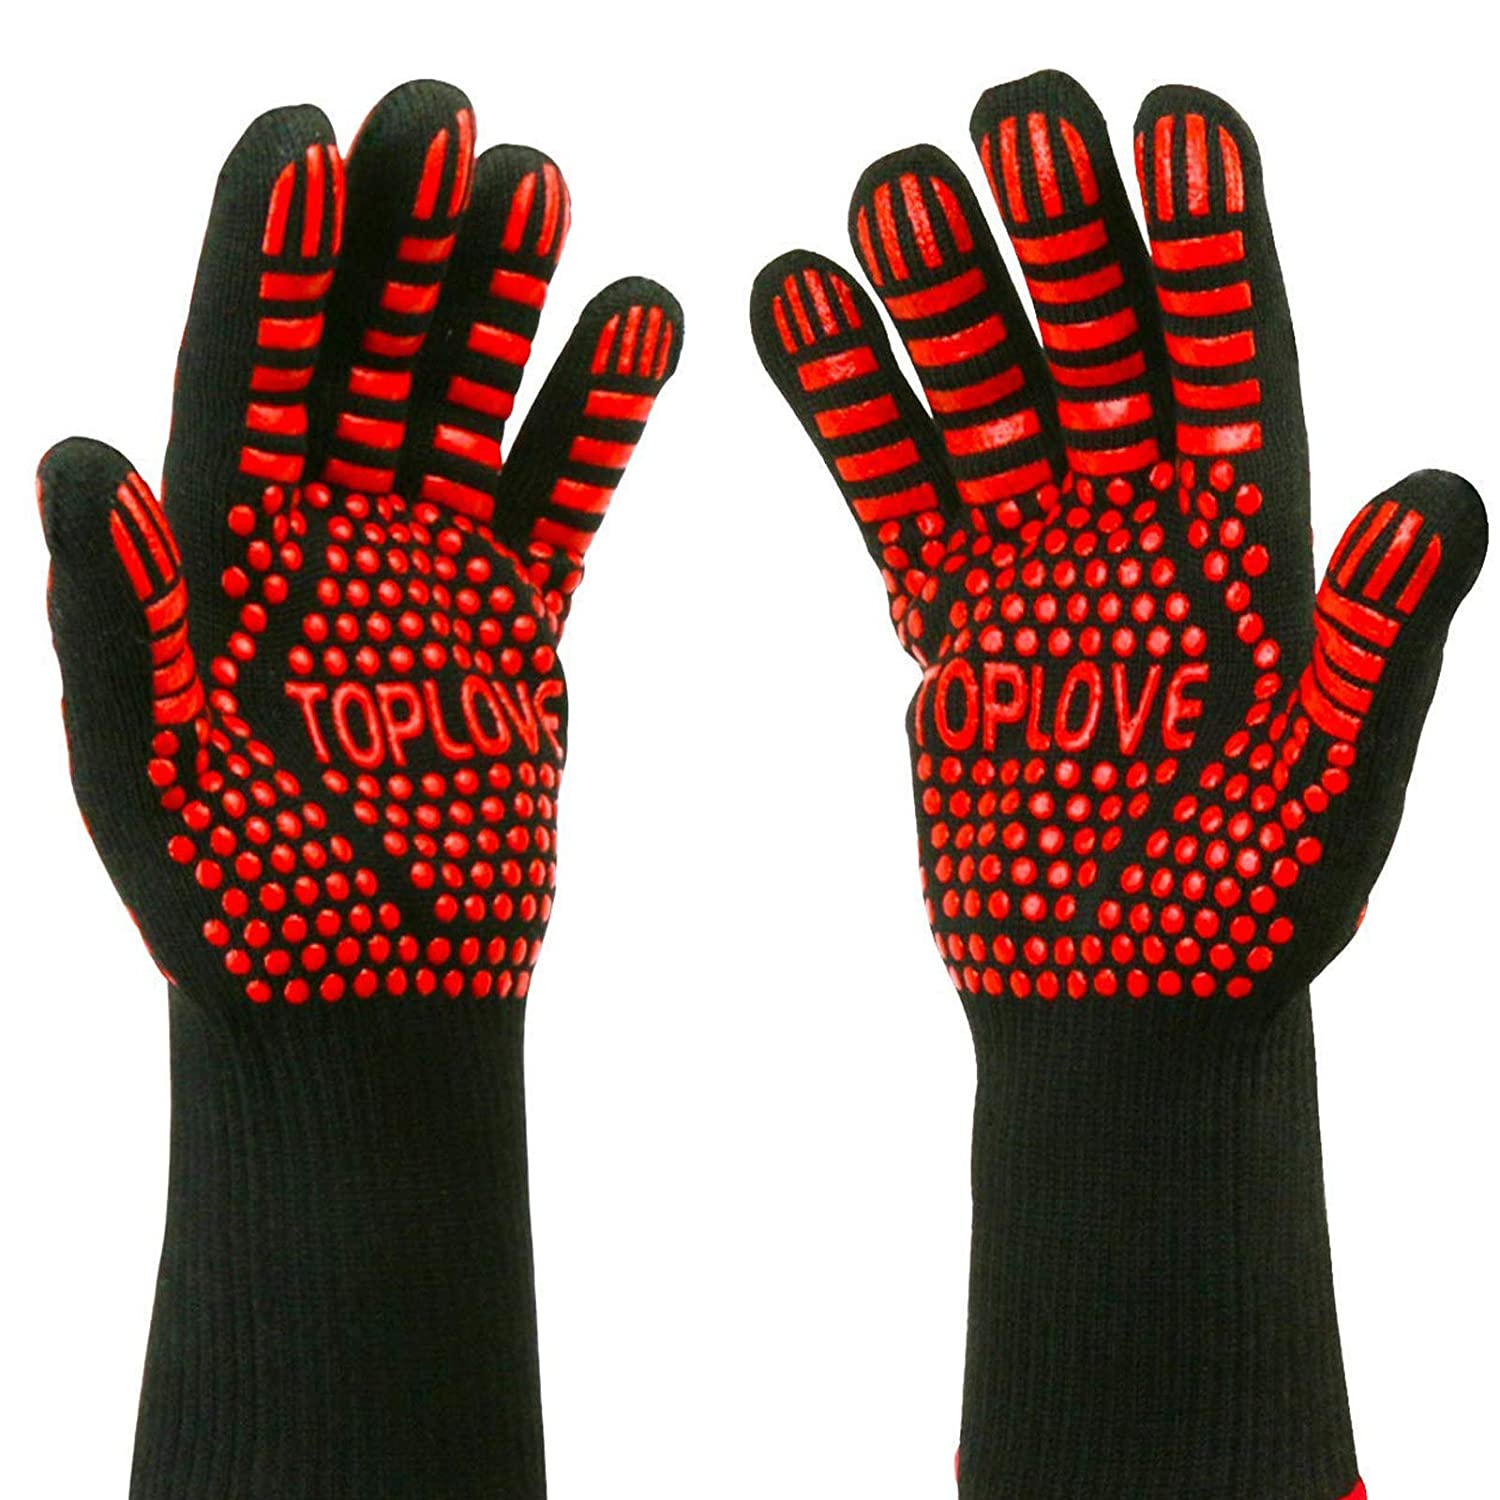 BBQ Grill Gloves,BBQ Gloves Oven Mitt Hand Protection from Grilling,BBQ,Fires,Microwave Oven and Other Hot Work in Kitchen,Outdoor Camping and Garden Party,Heat and Flame Resistant up to 932 °F Aramid Fiber Nomex Bosmutus